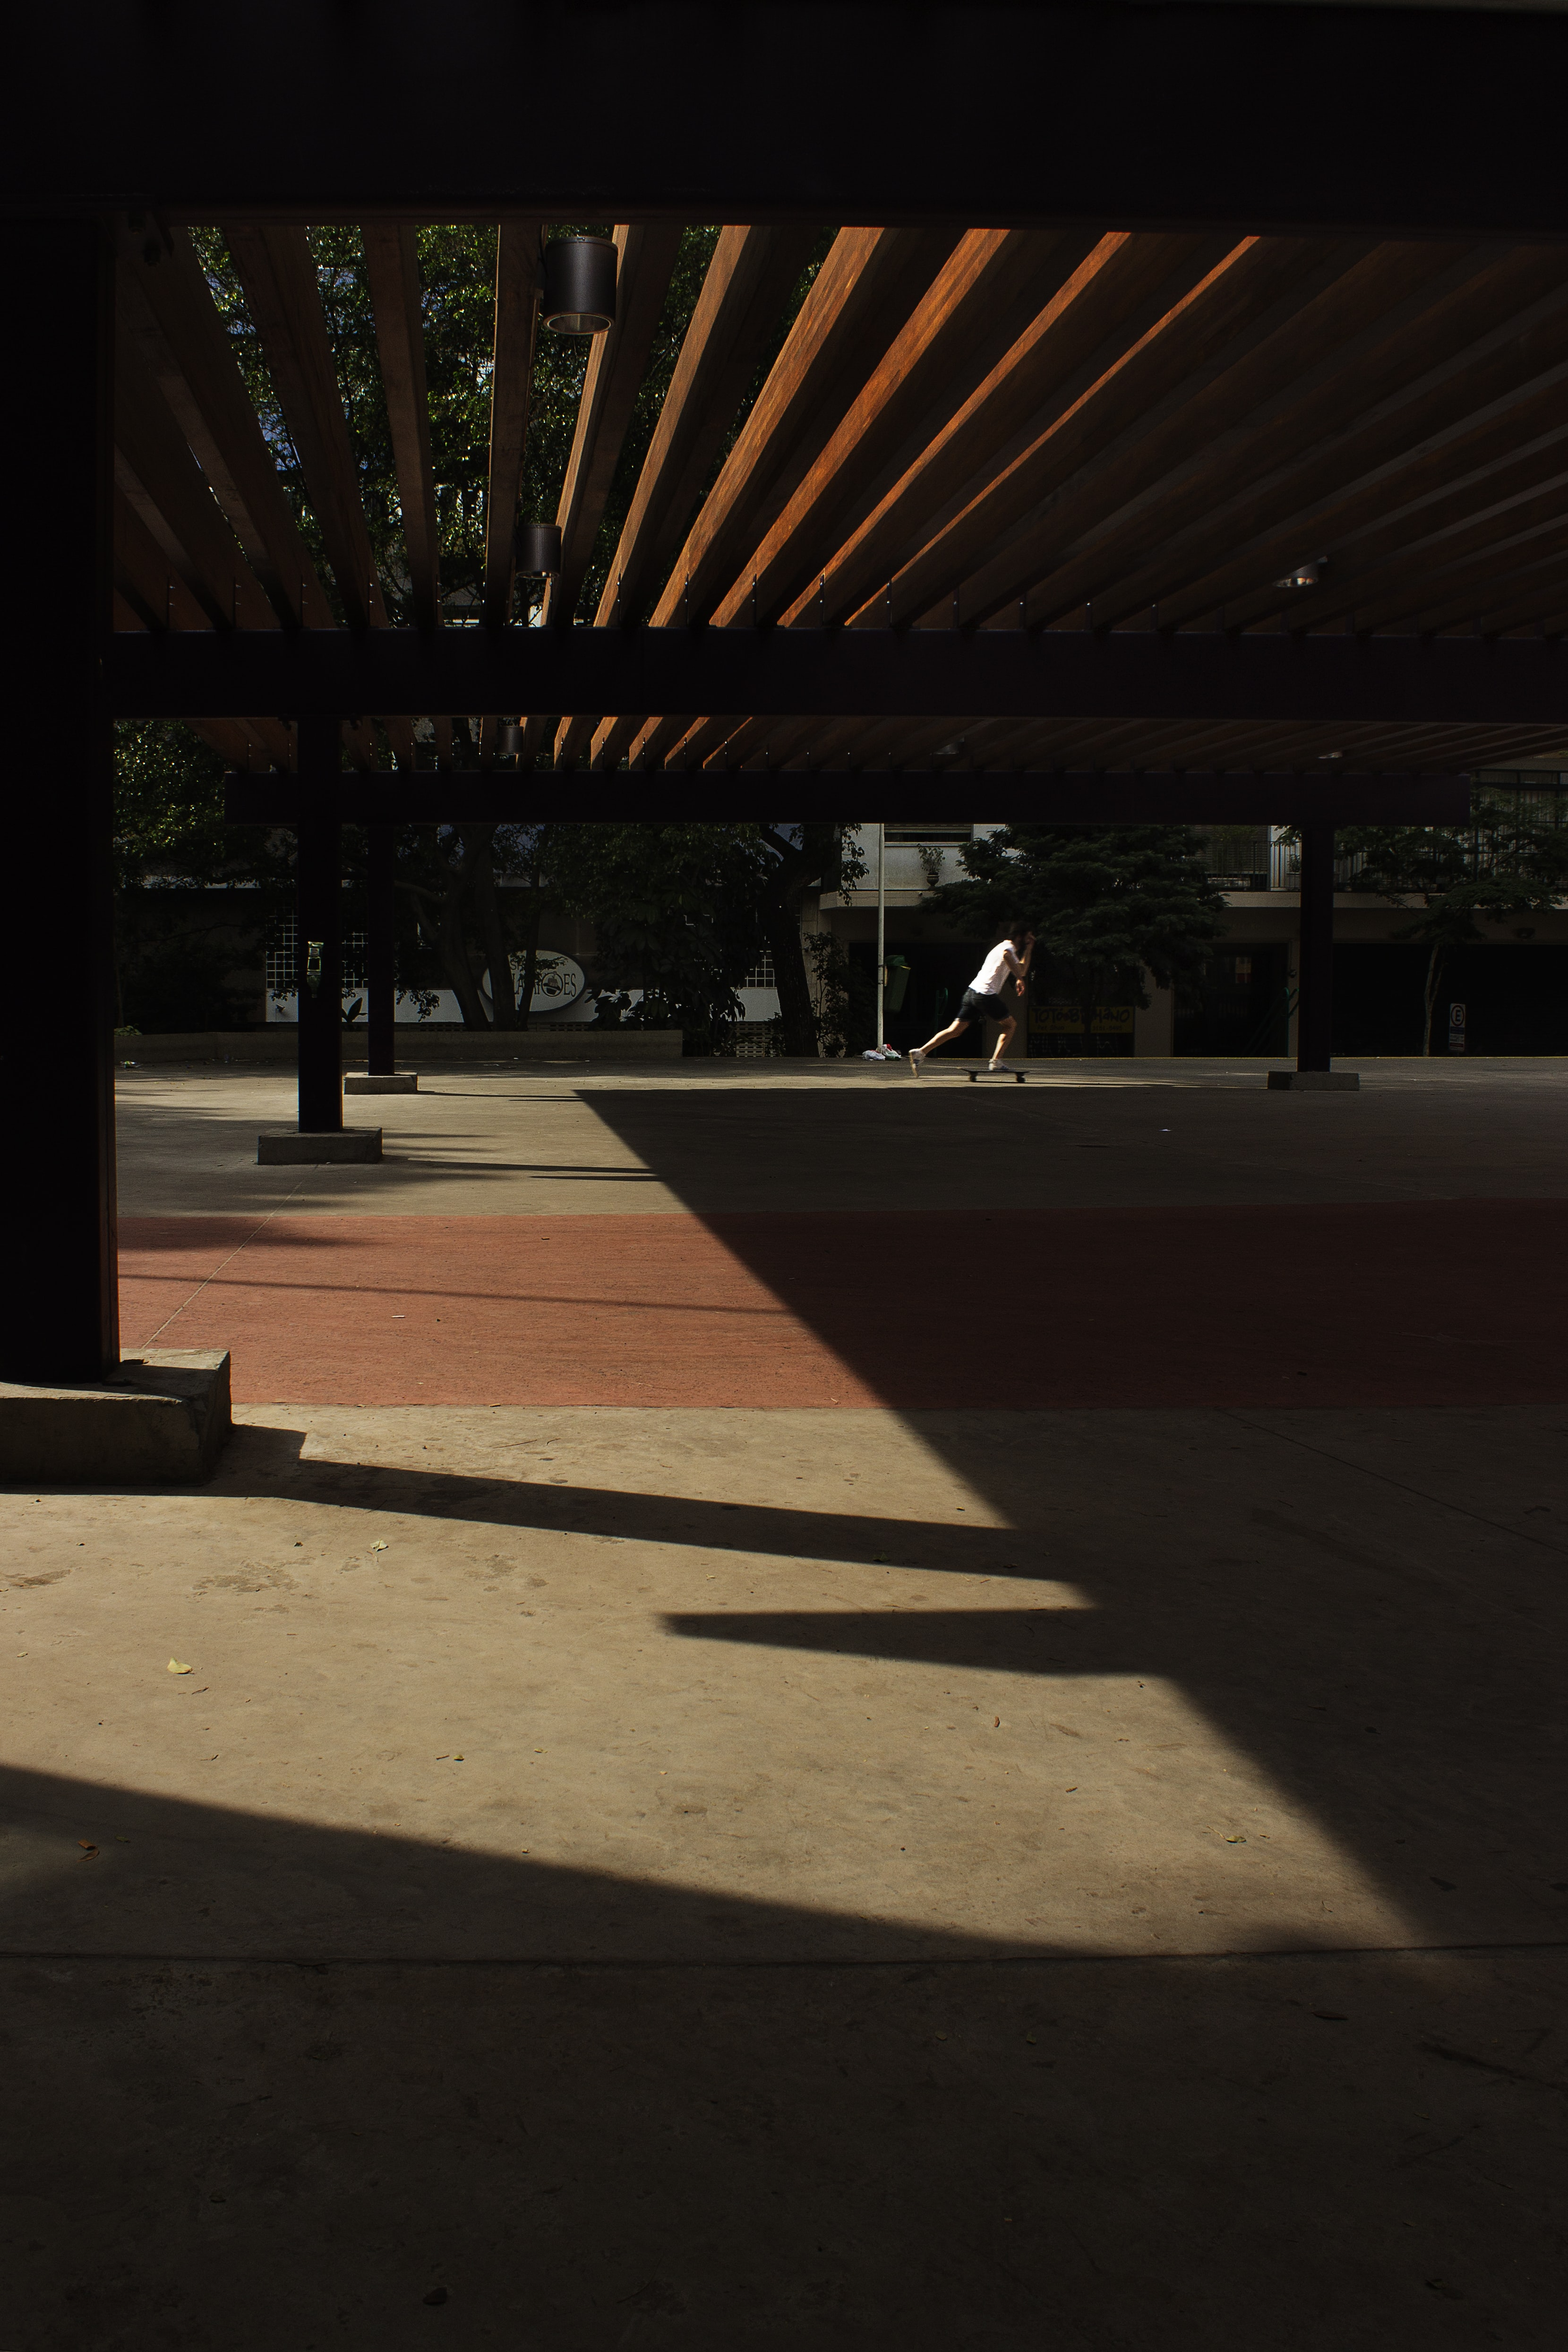 man skateboarding in open space